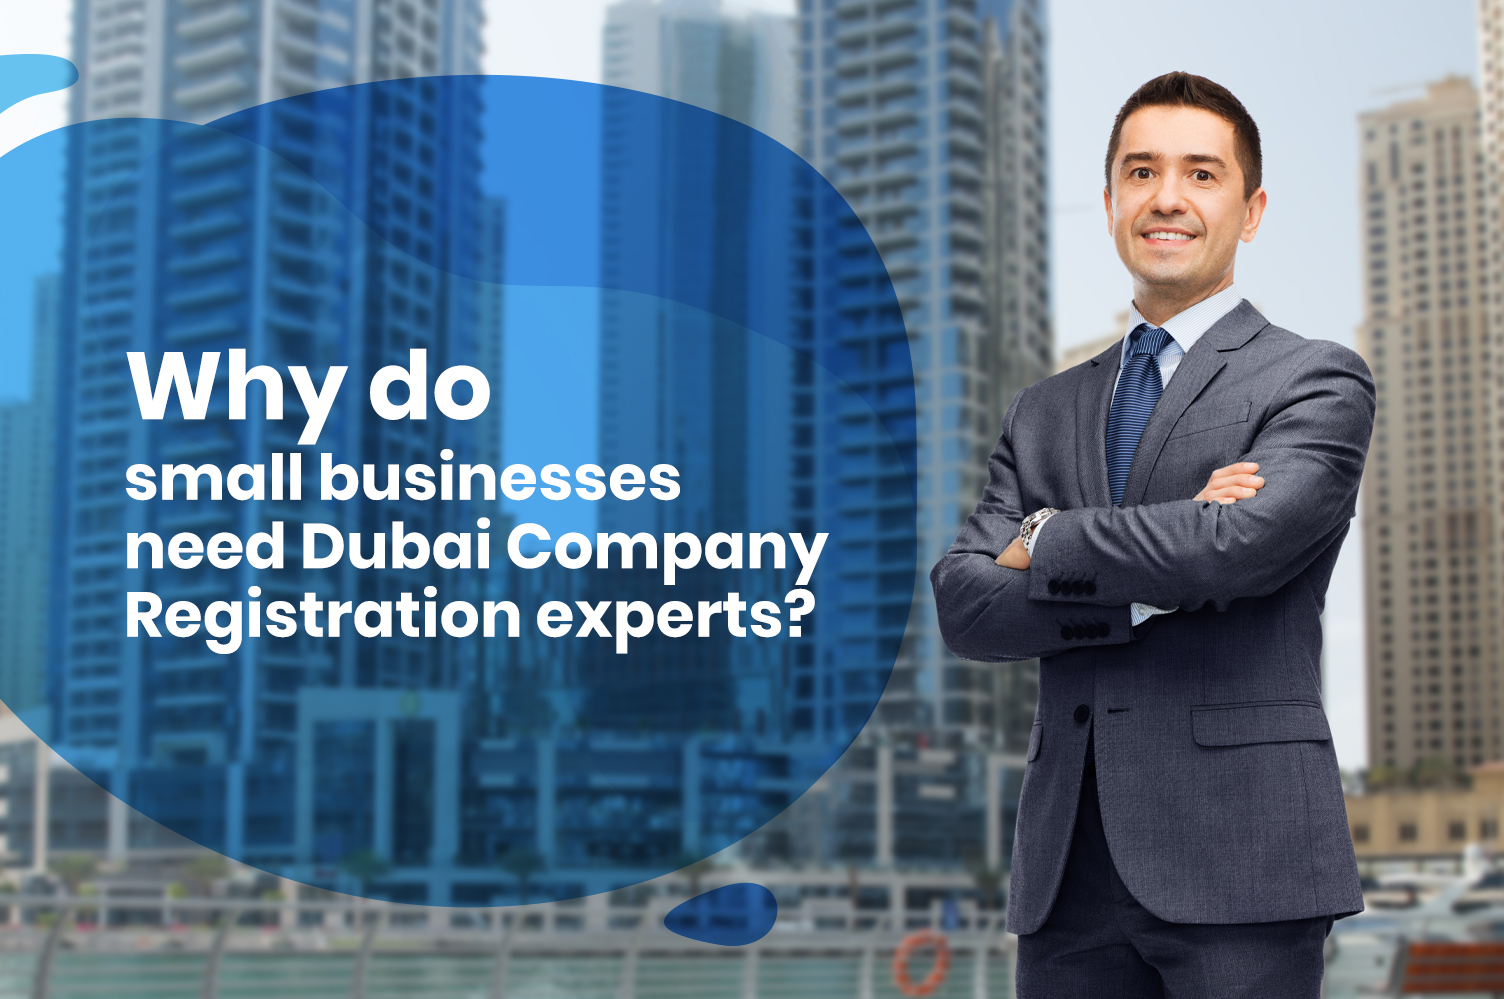 Why do small businesses need Dubai Company Registration experts?